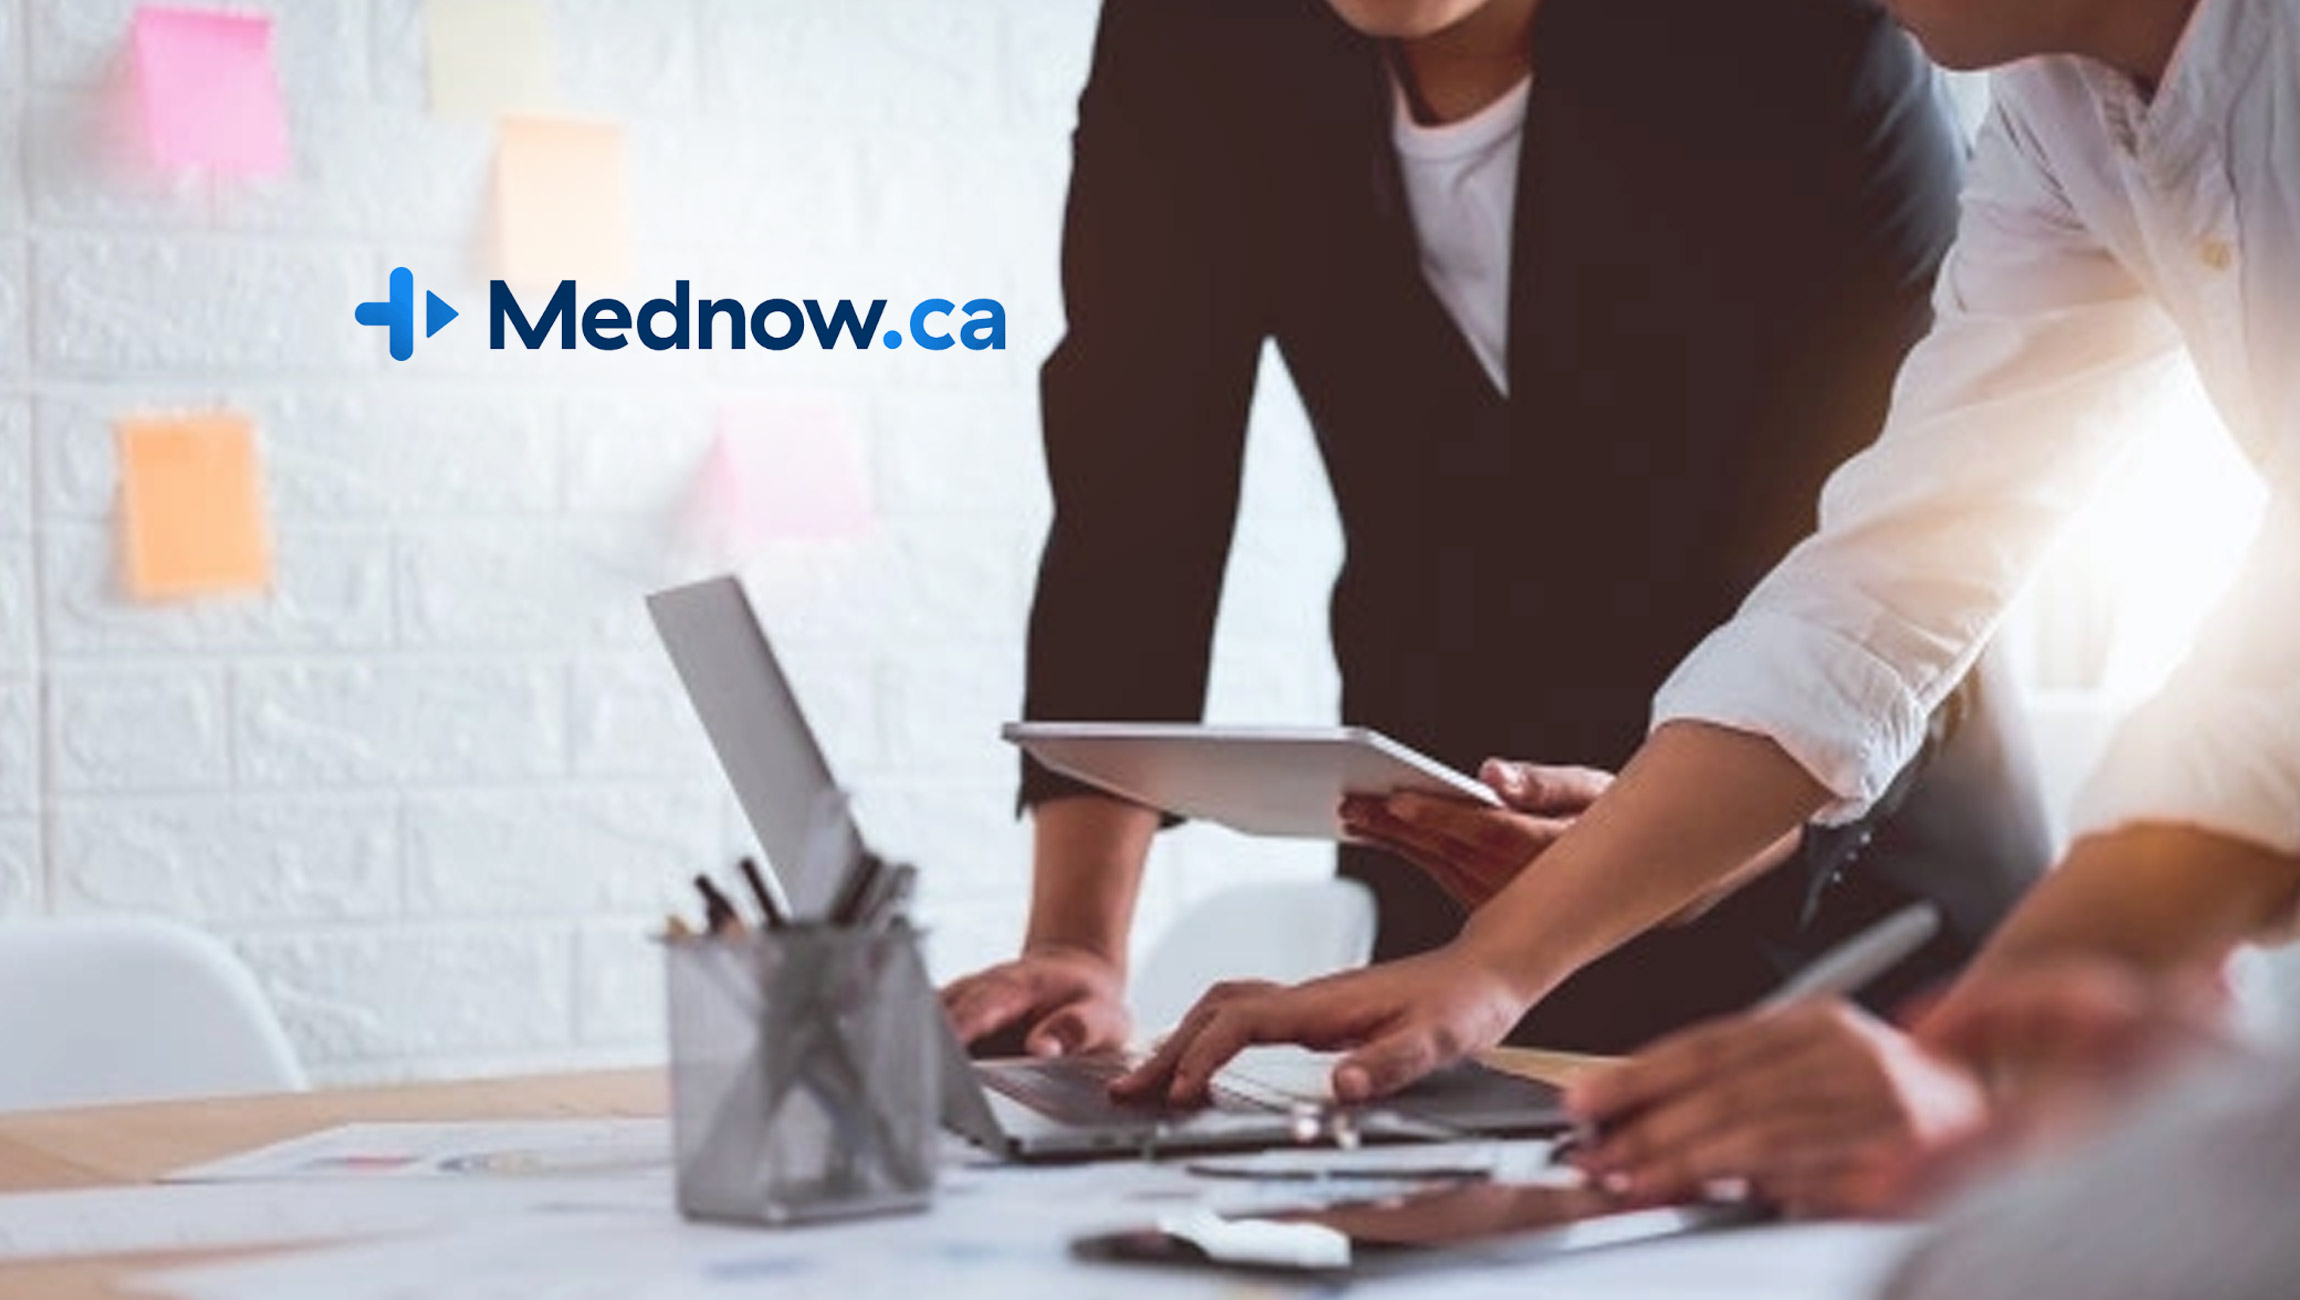 Mednow Engages Hybrid for Marketing Services